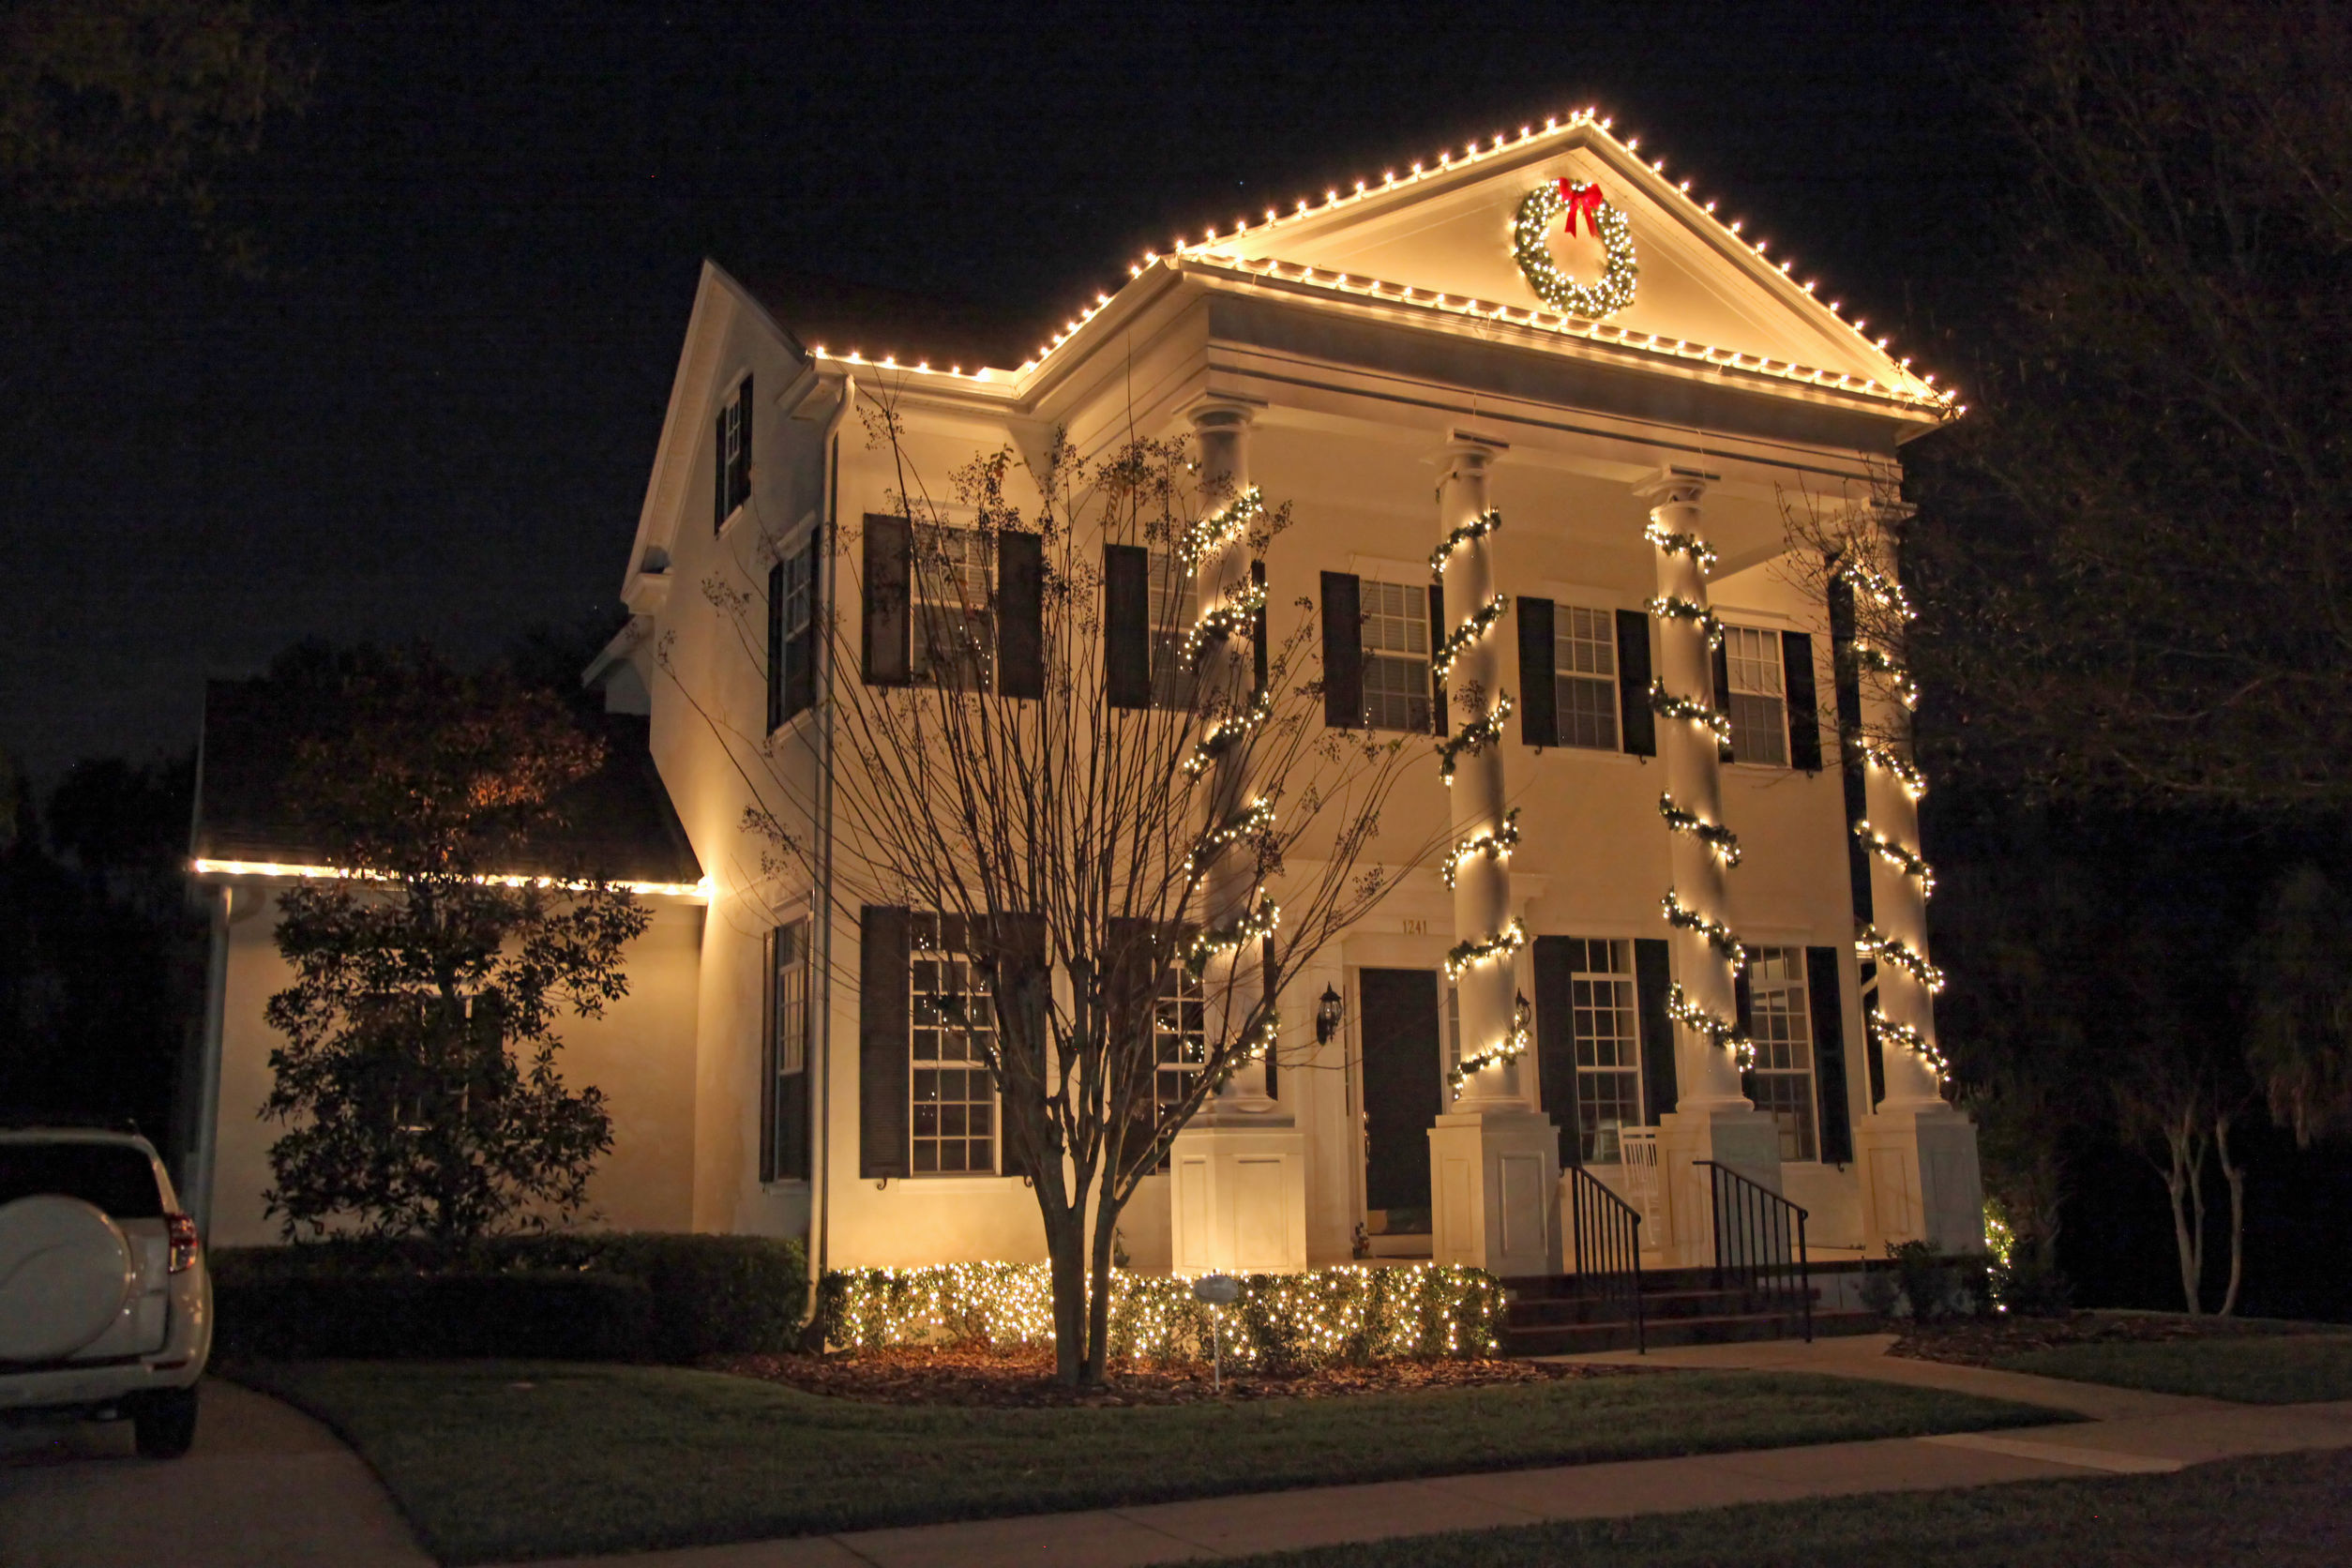 40282427 - a colonial house with a lot of christmas lights